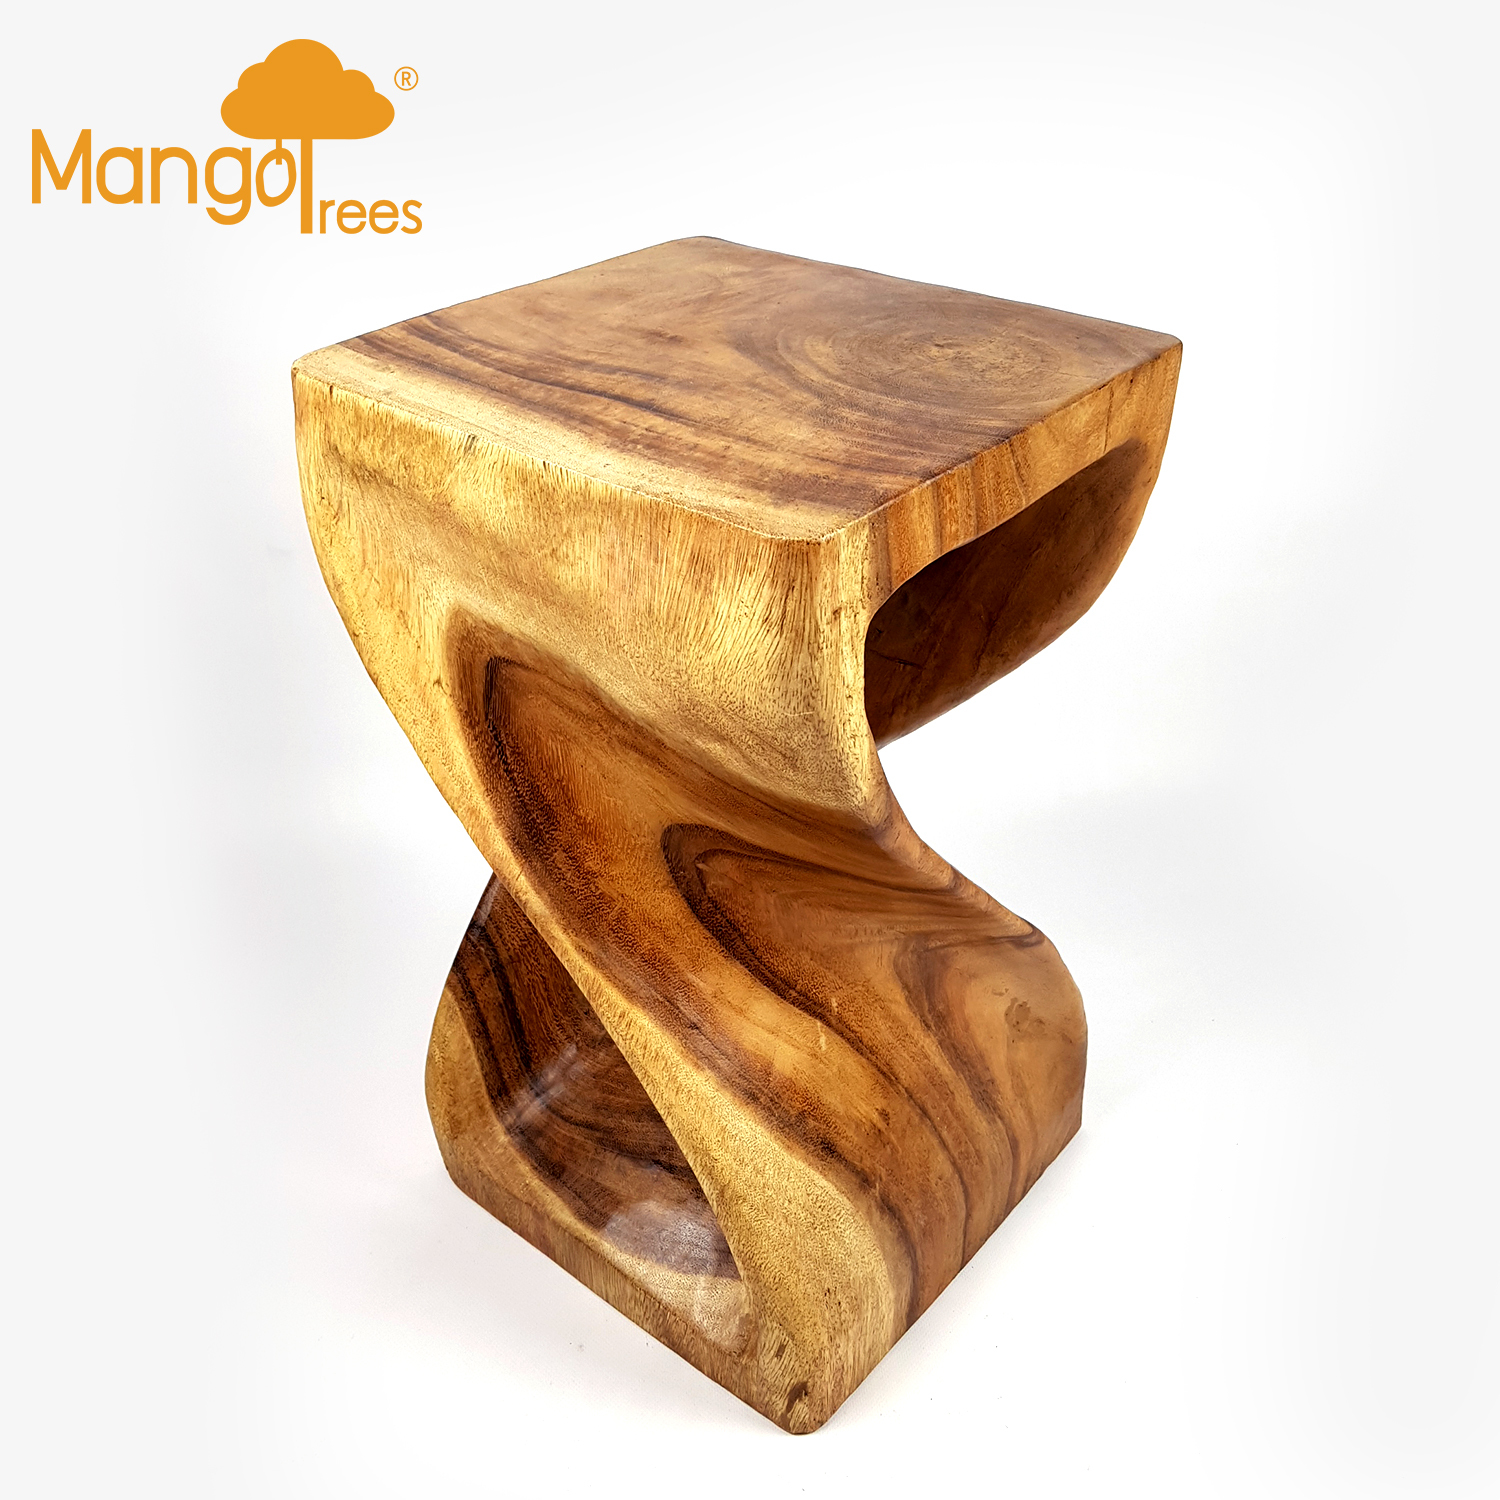 round sofa probably super cool twisted wood end table idea stump stool wooden side corner mango trees rtf twist white coffee ikea top phone charger desk mirror lacquer antique